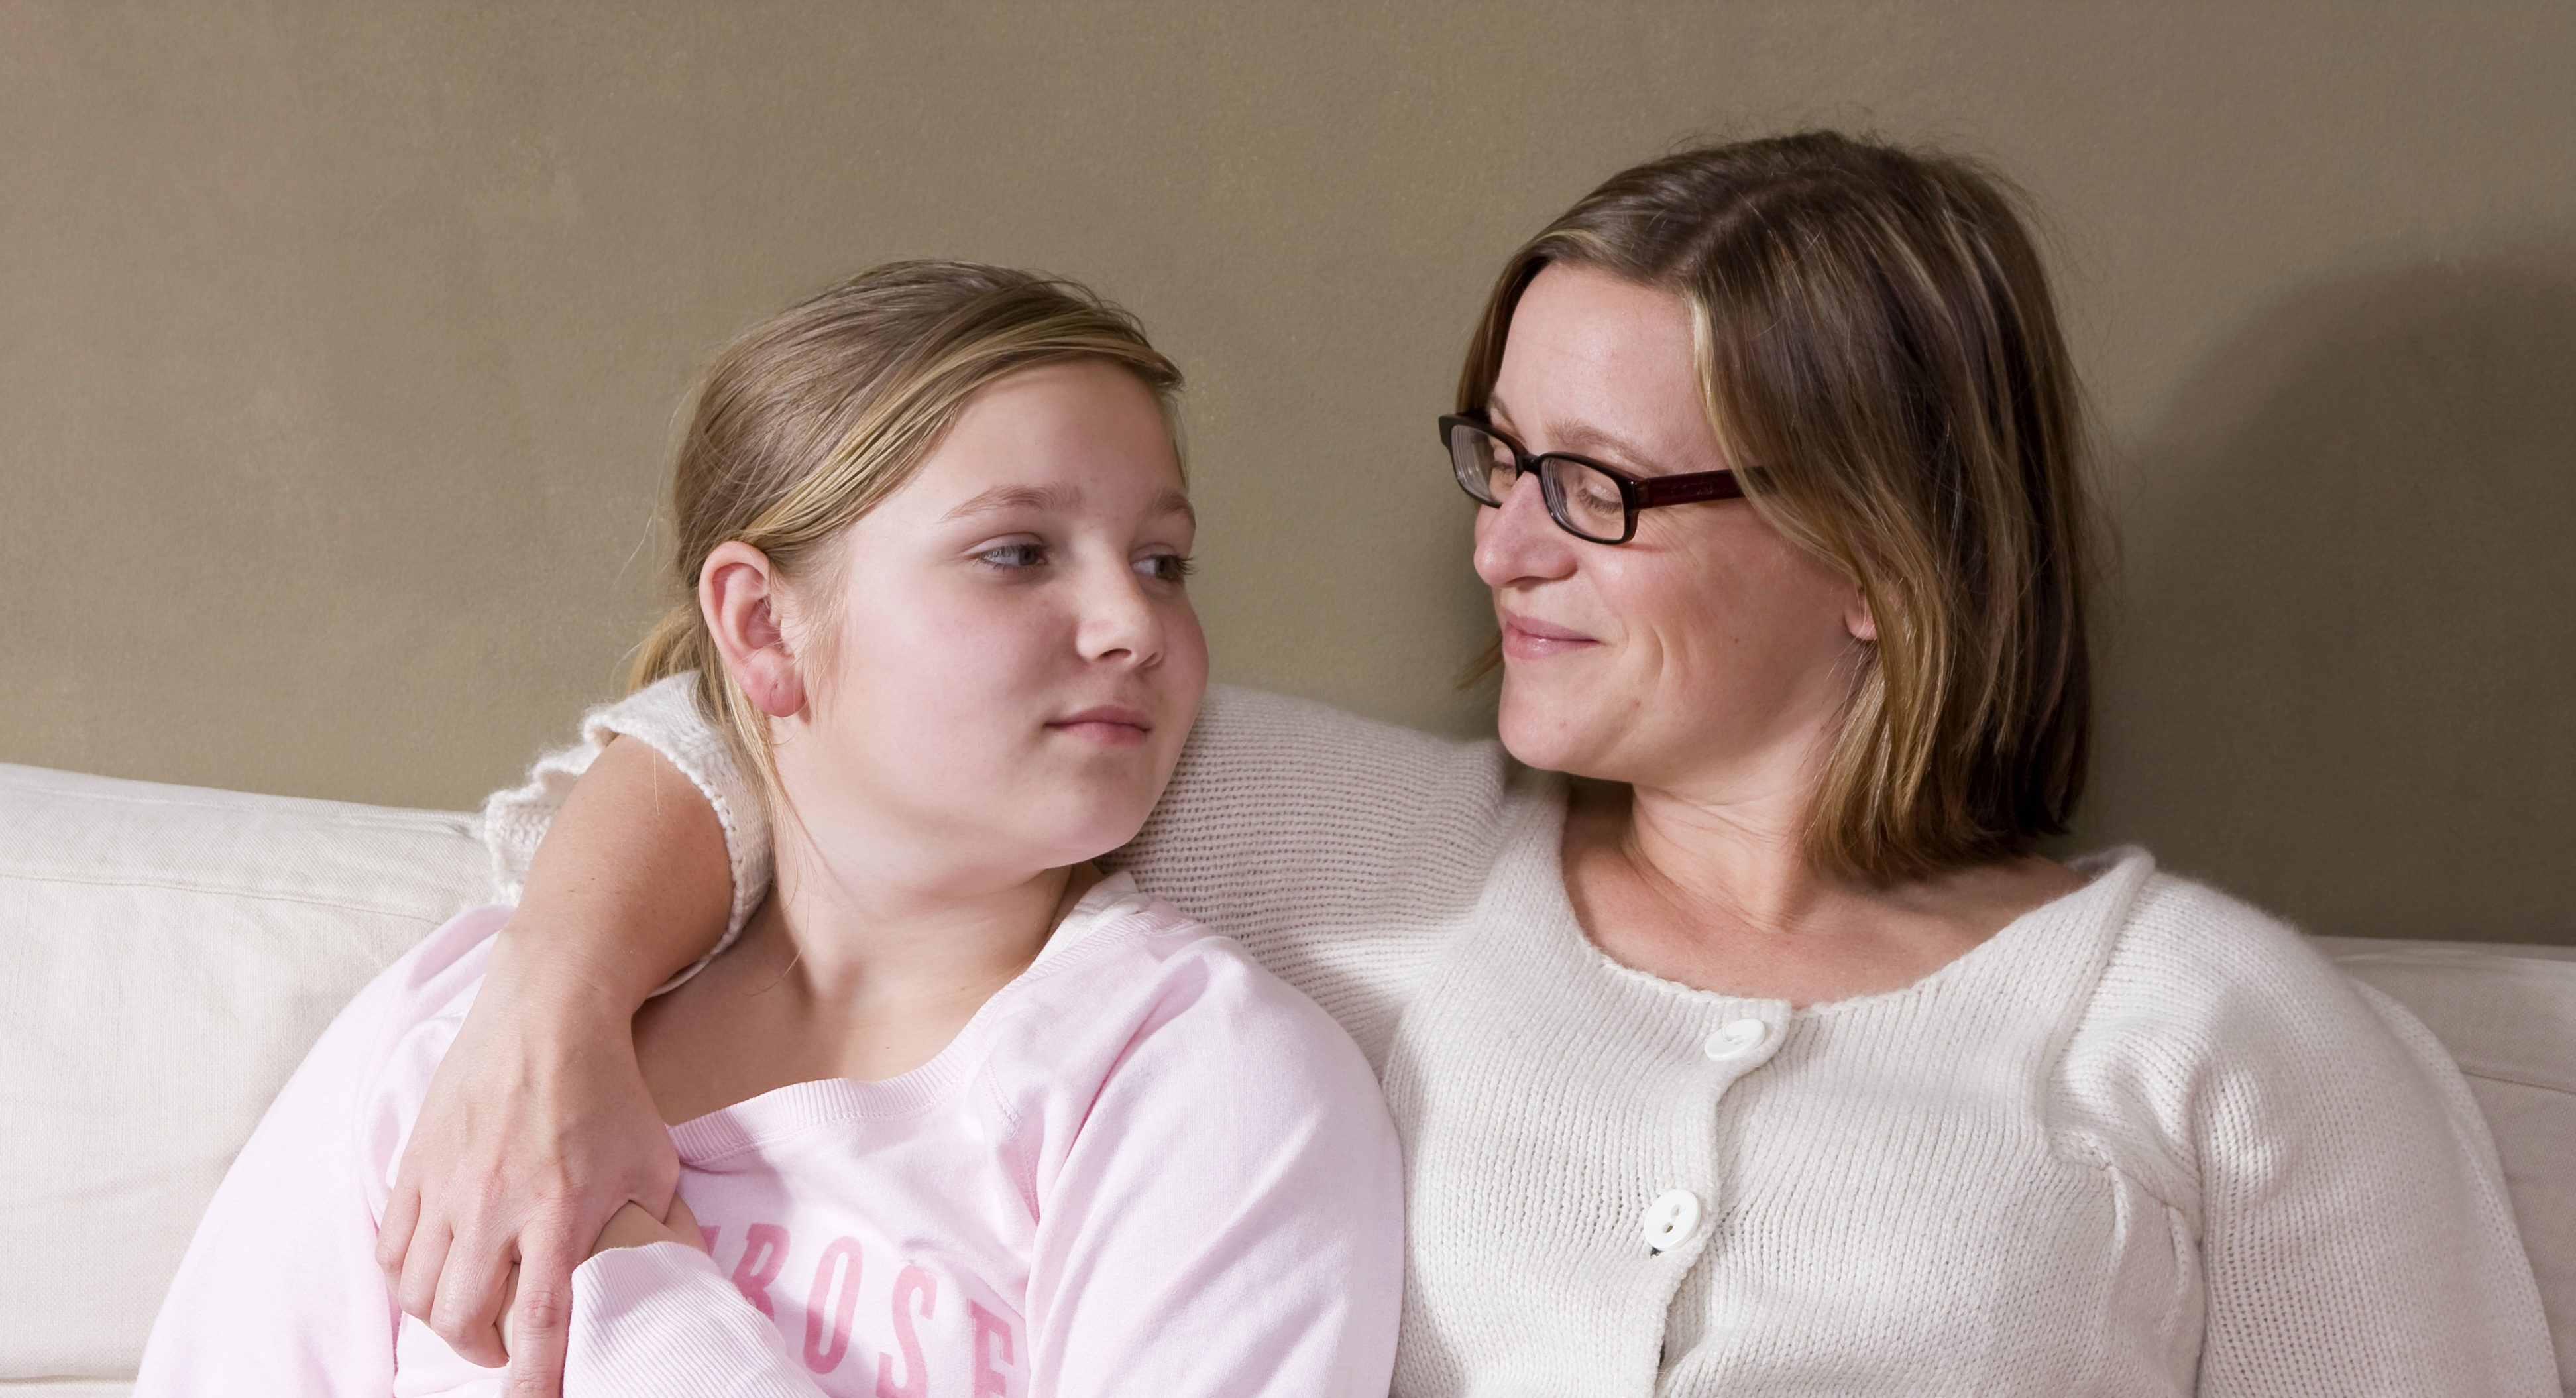 Image of a Mother and daughter having conversation